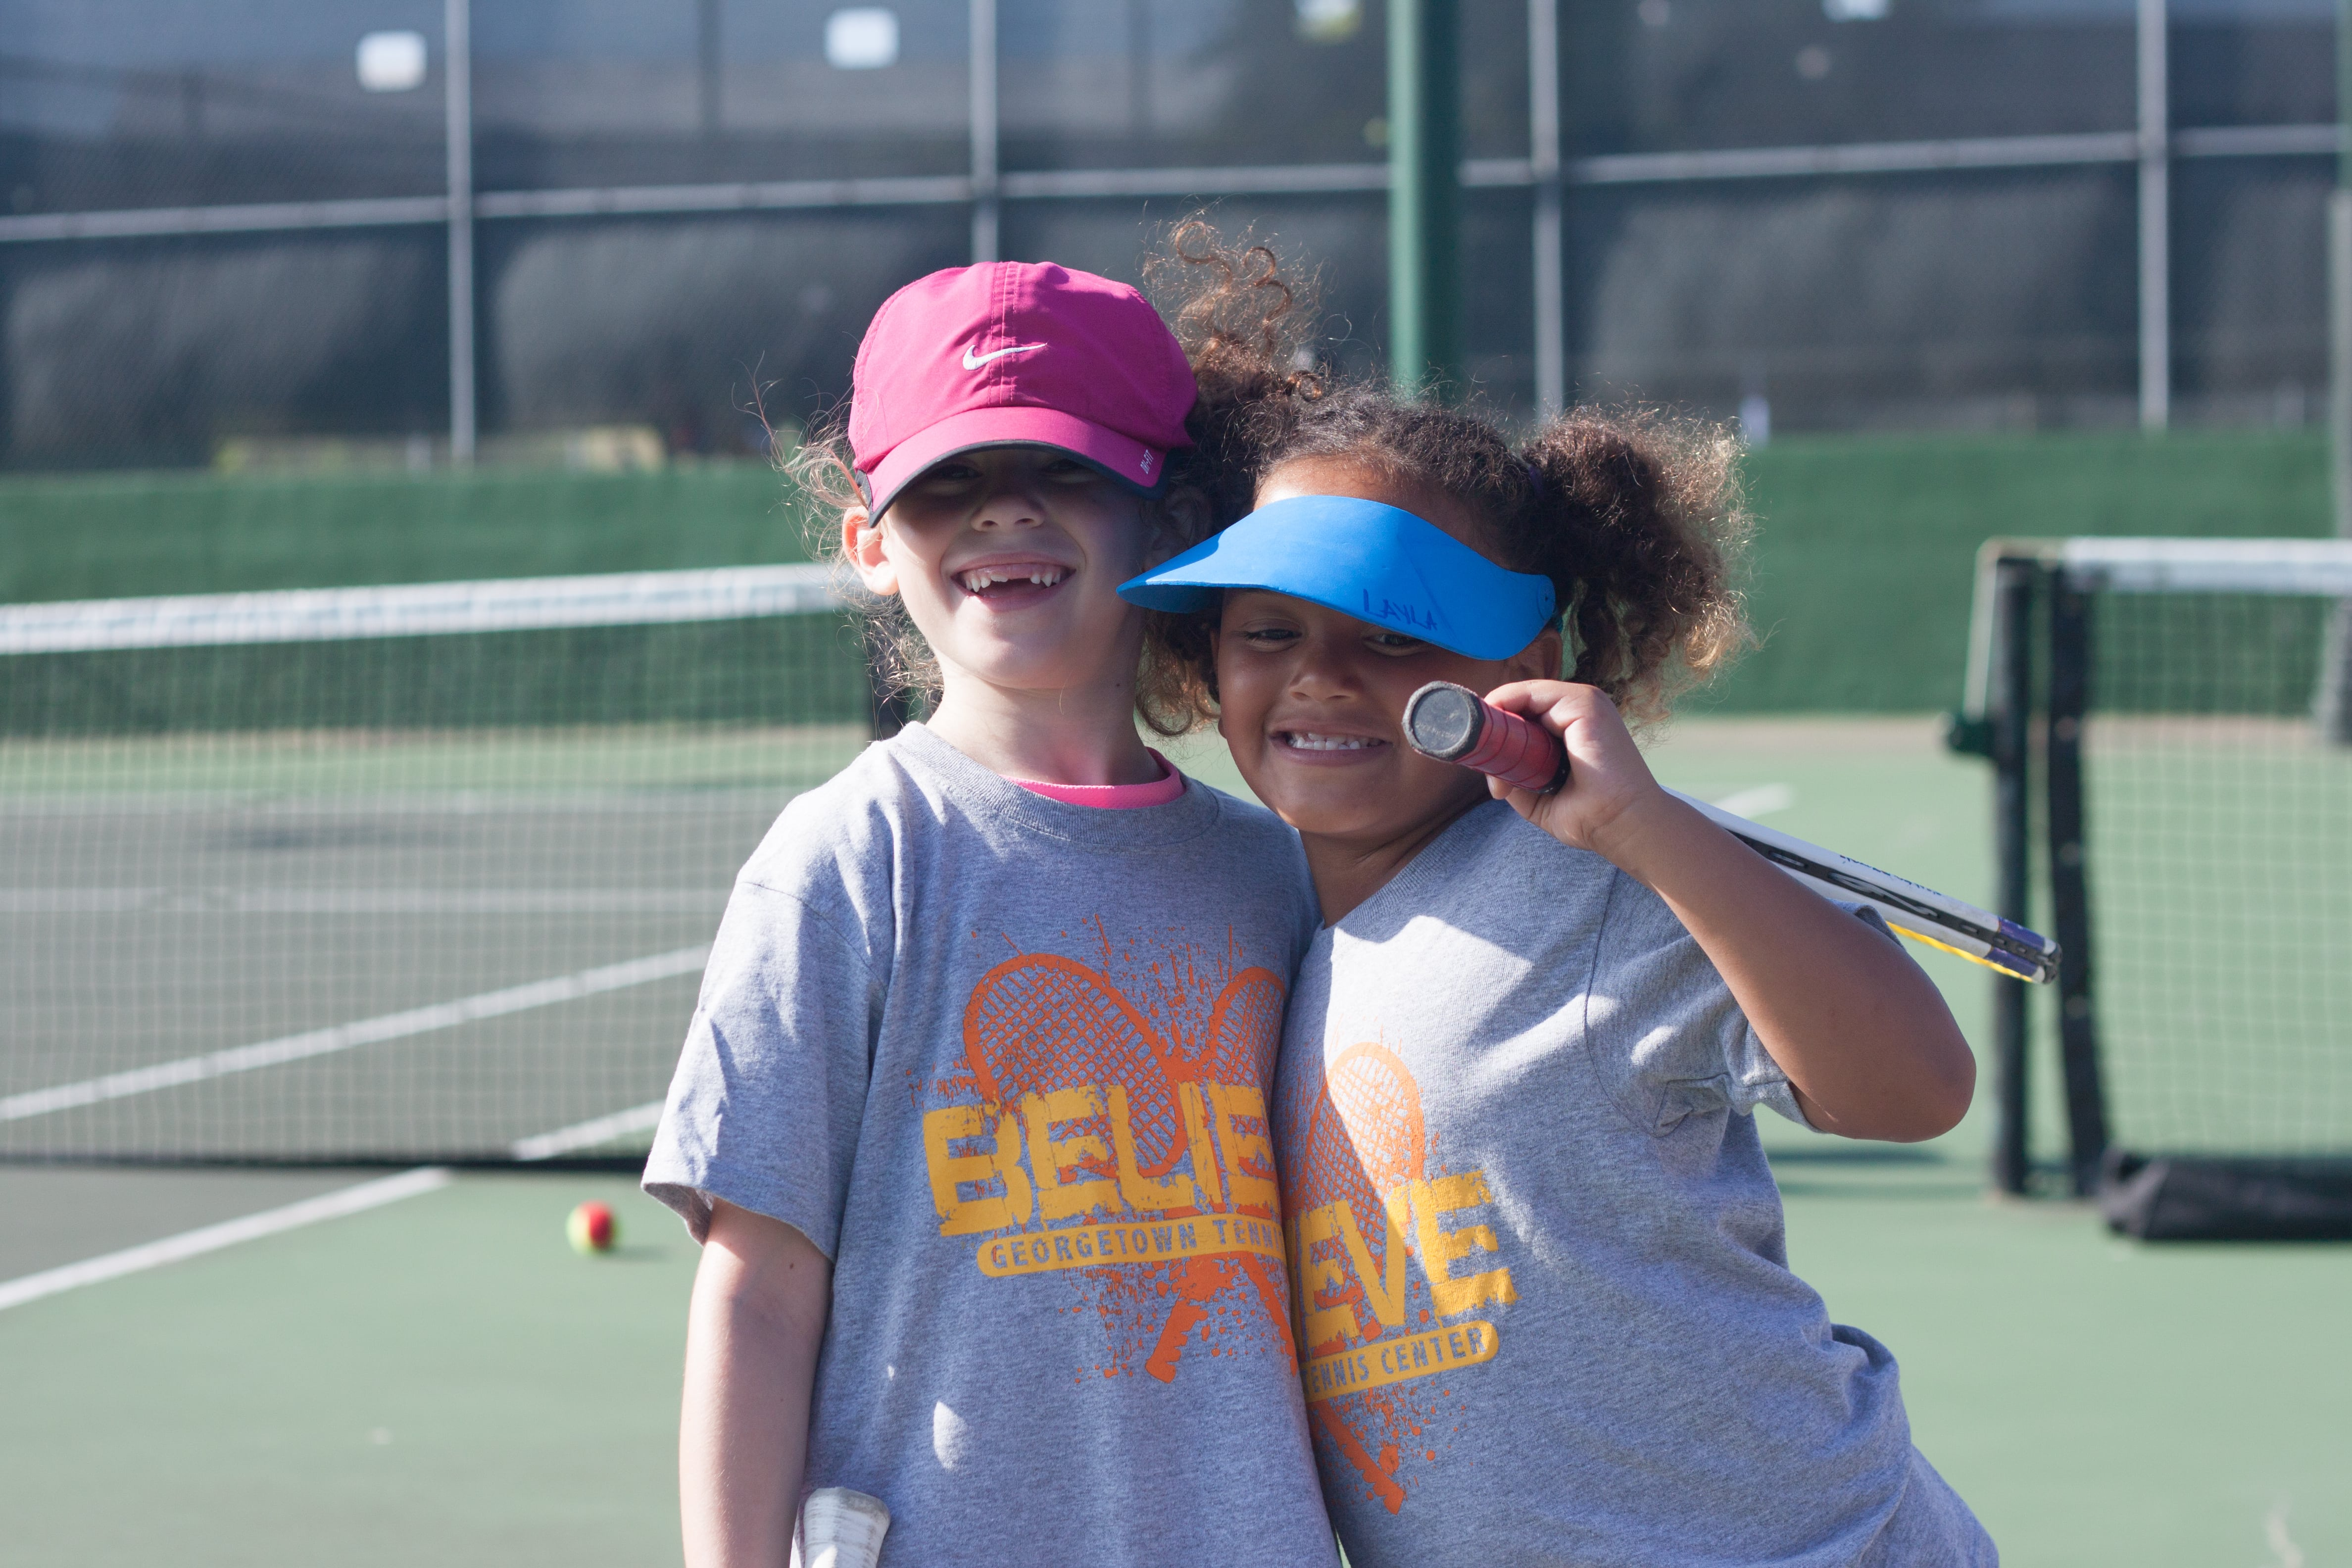 Two young girls wearing Believe Georgetown Tennis shirts smile while holding tennis racquets on the courts